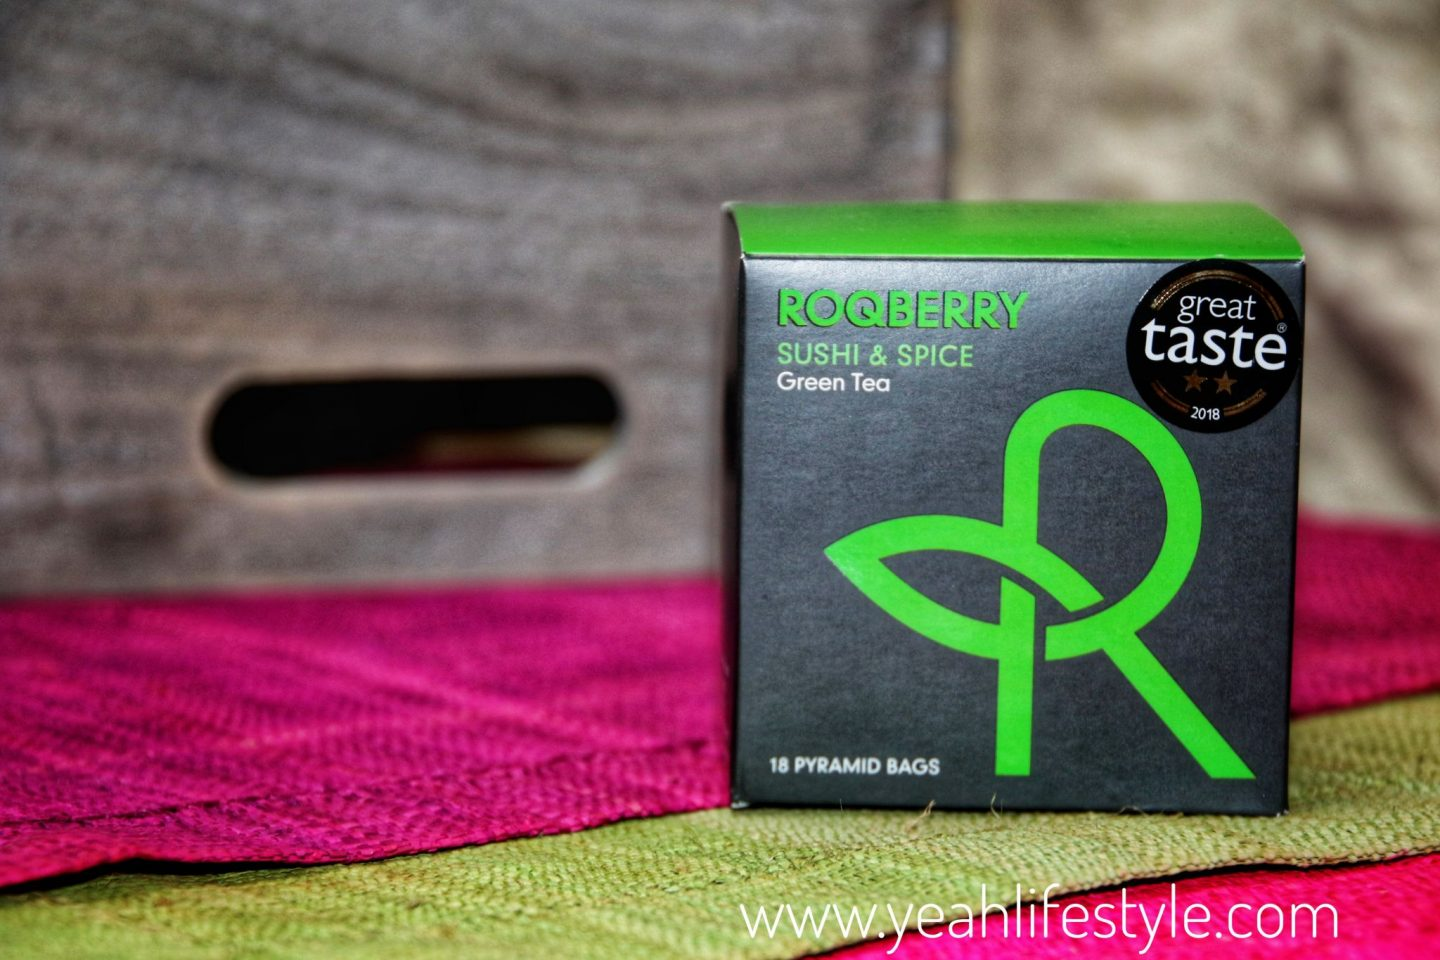 roqberry-sushi-green-tea-january-blogger-gift-guide